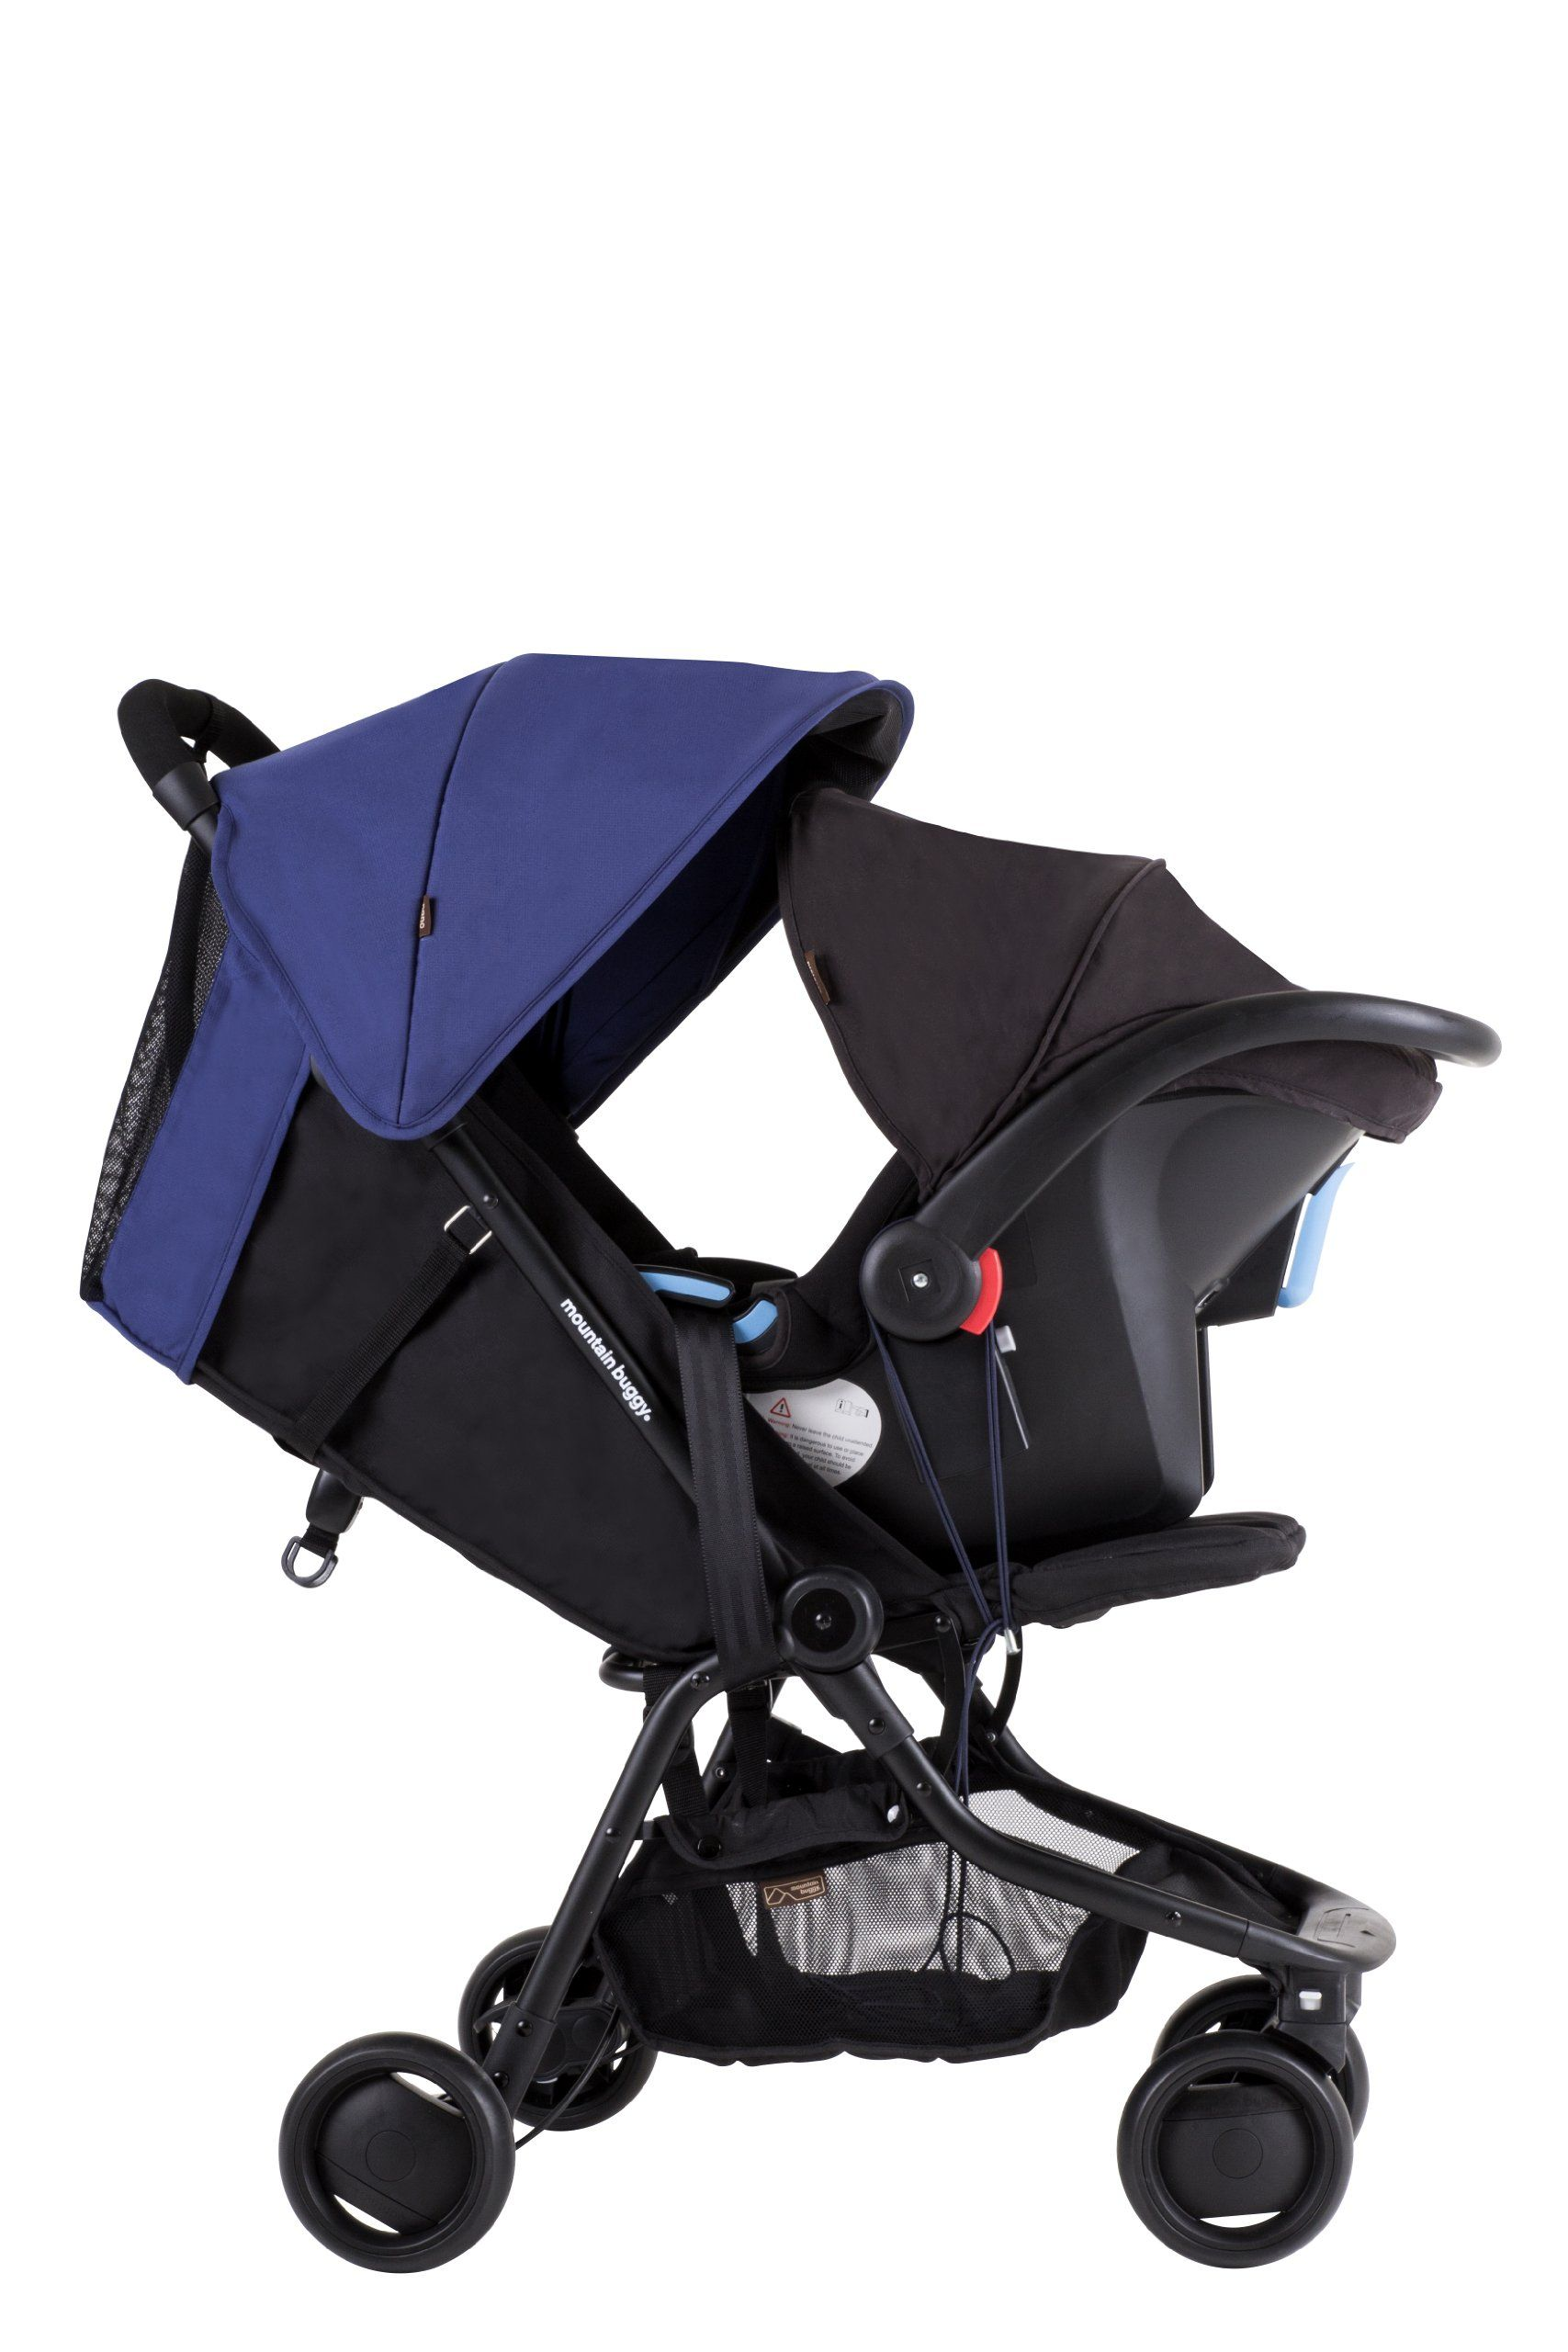 Mountain Buggy Nano Stroller, Black Baby